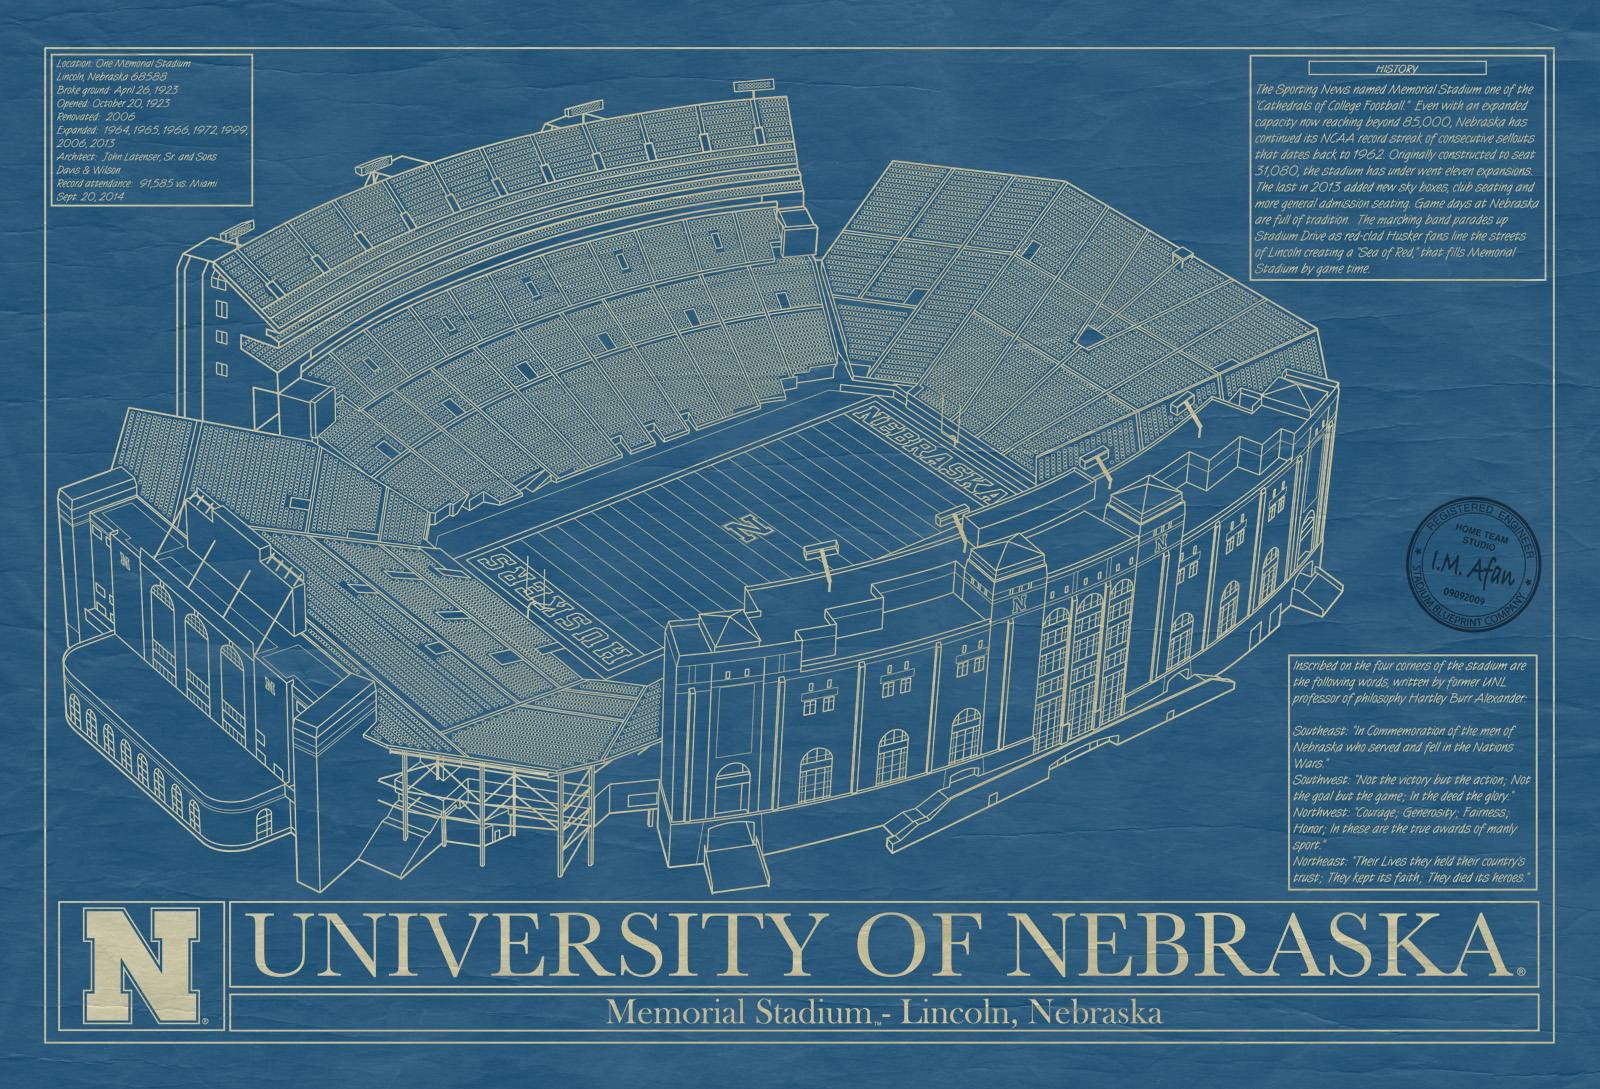 Nebraska memorial stadium lincoln blueprint art stadium university of nebraska memorial stadium lincoln blueprint malvernweather Choice Image